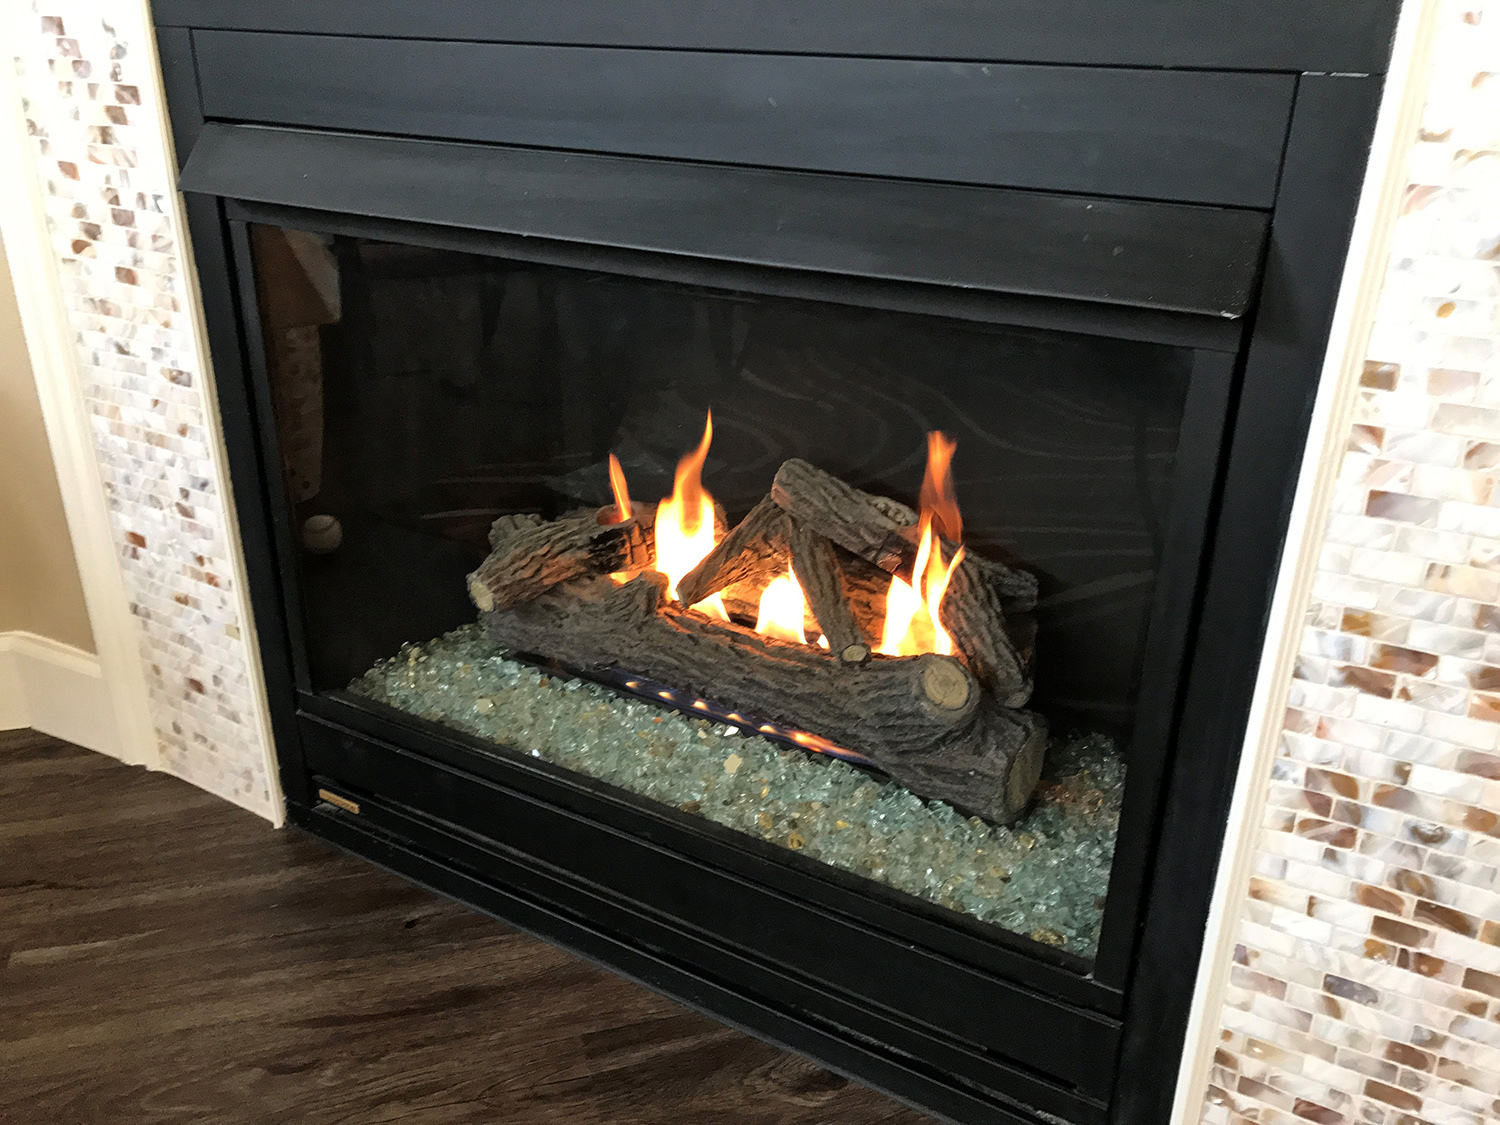 Fireplace Fire Gl Installation Guide